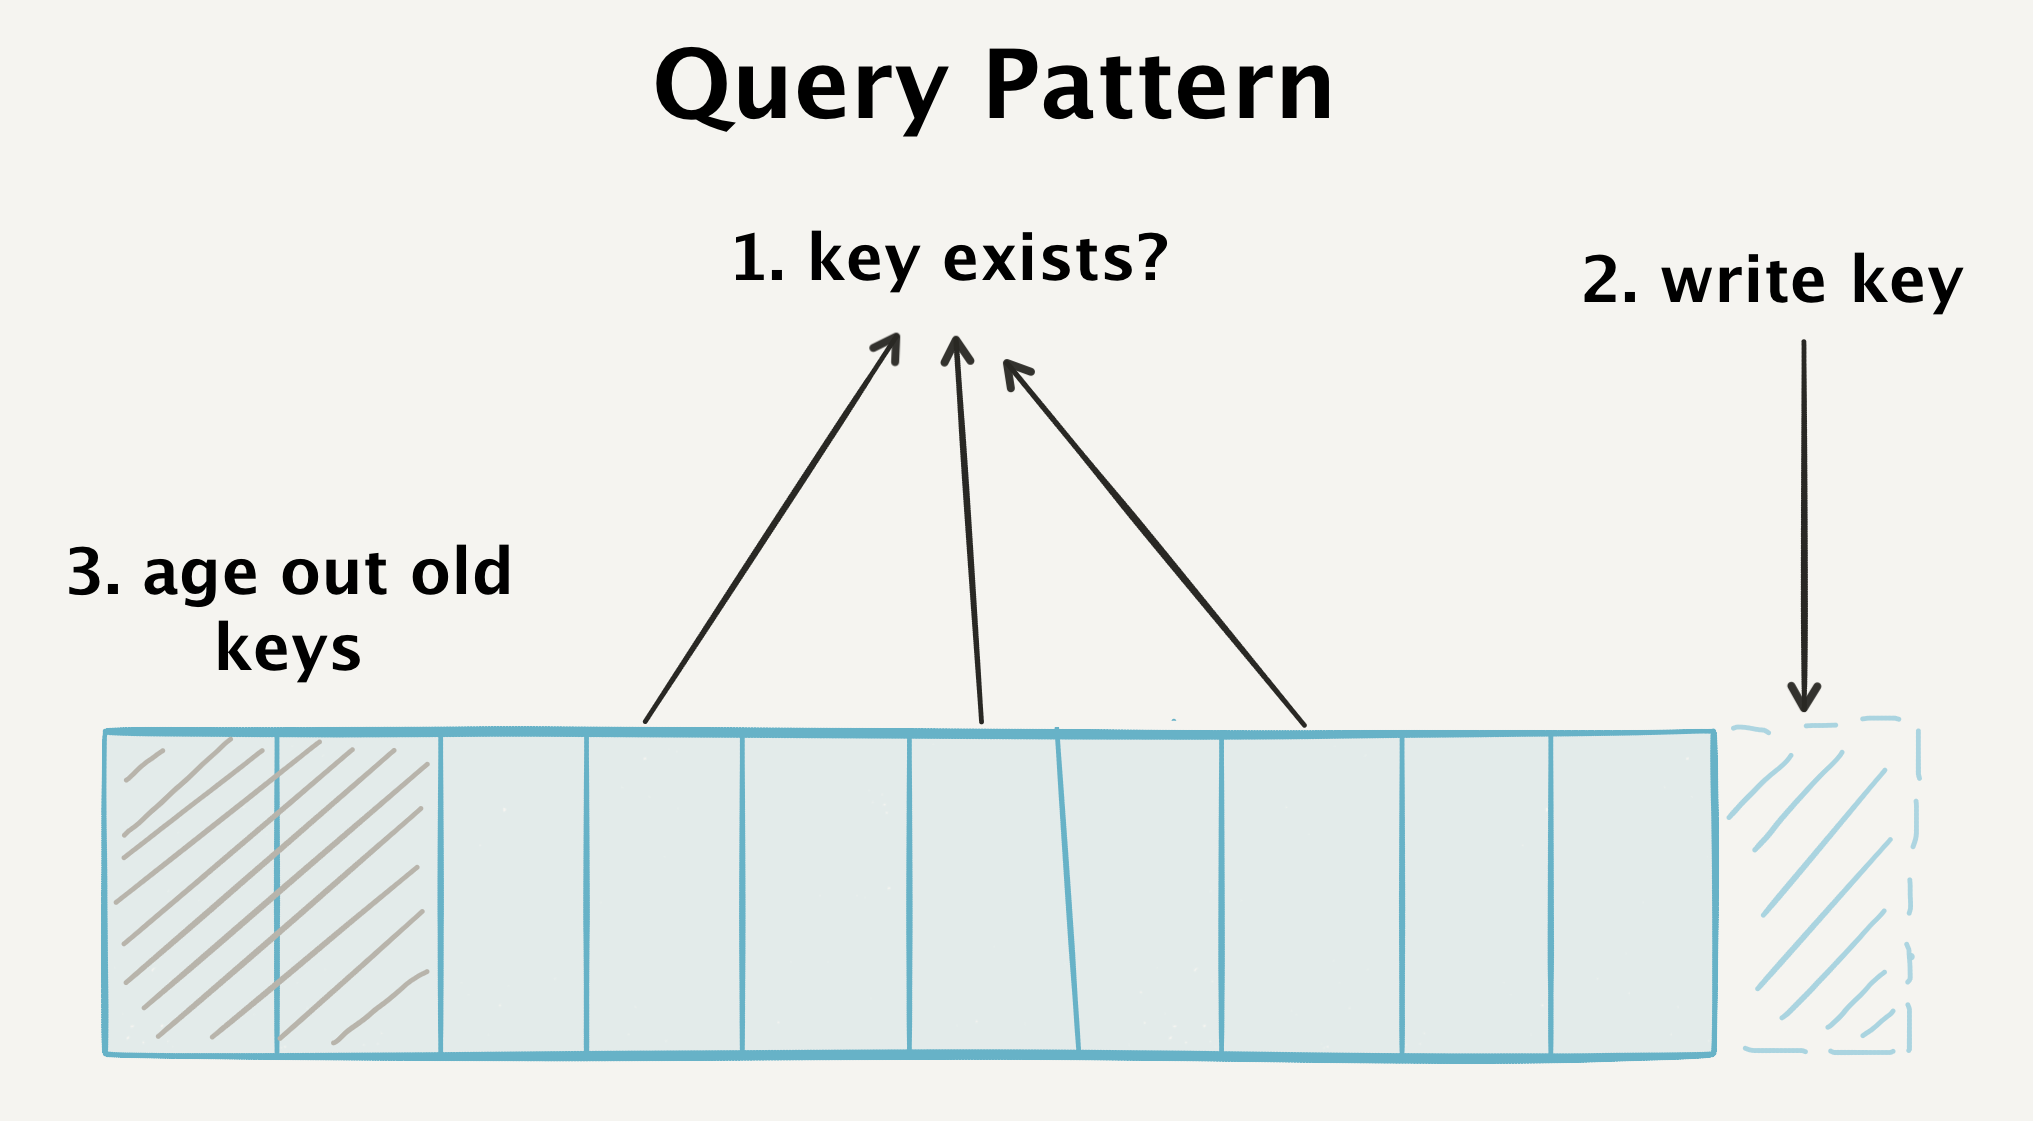 Our database has to satisfy three very separate query patterns